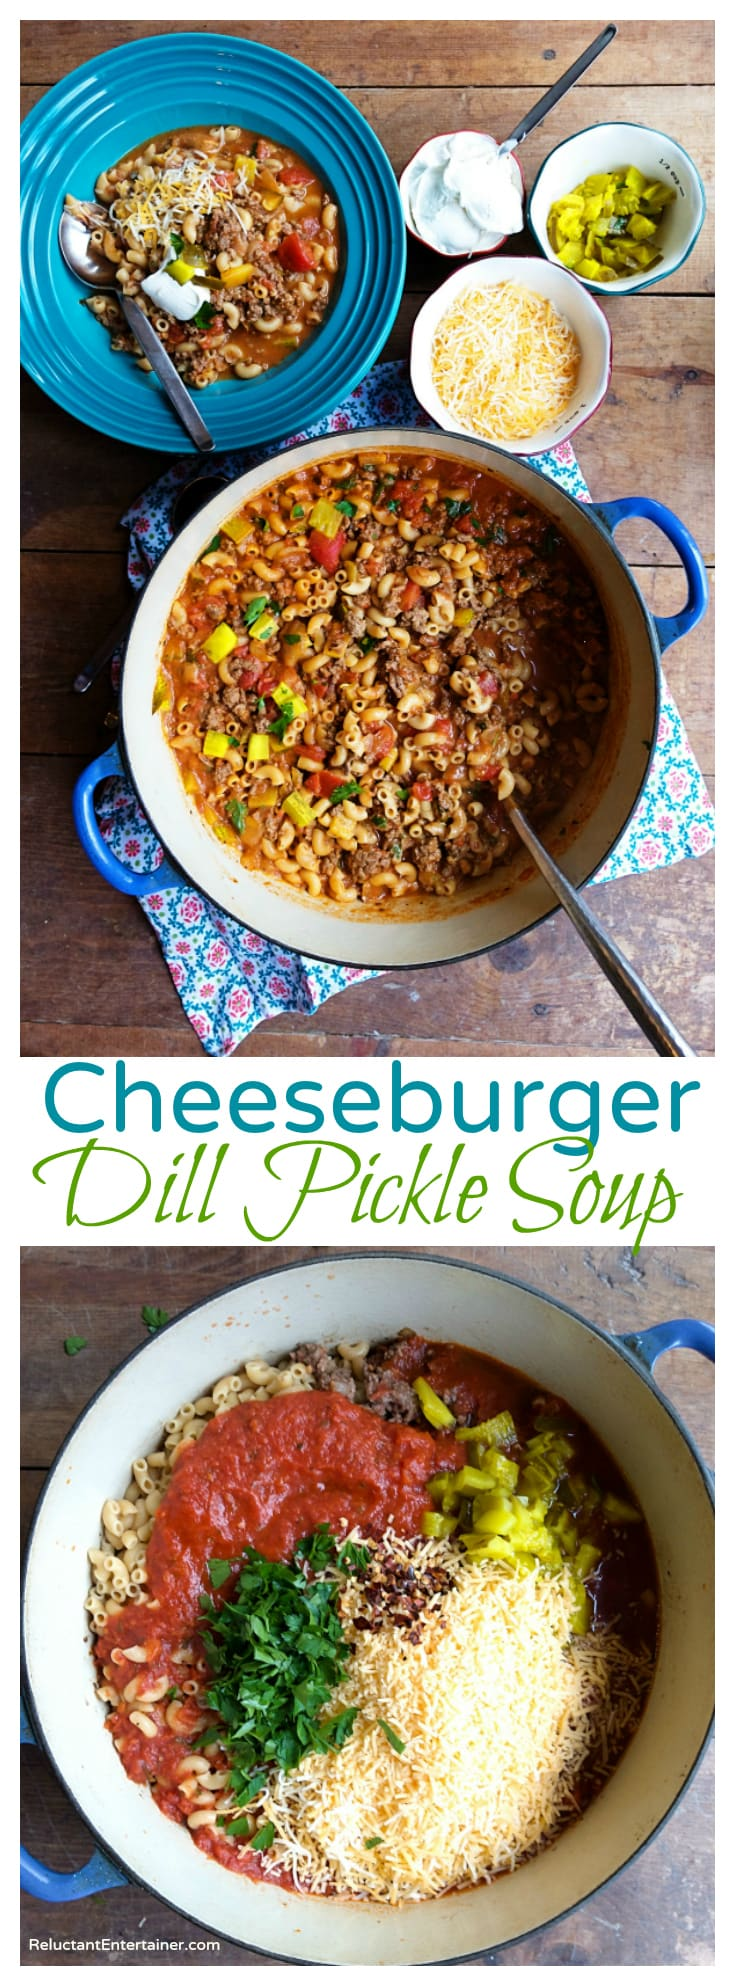 Cheeseburger Dill Pickle Soup Recipe